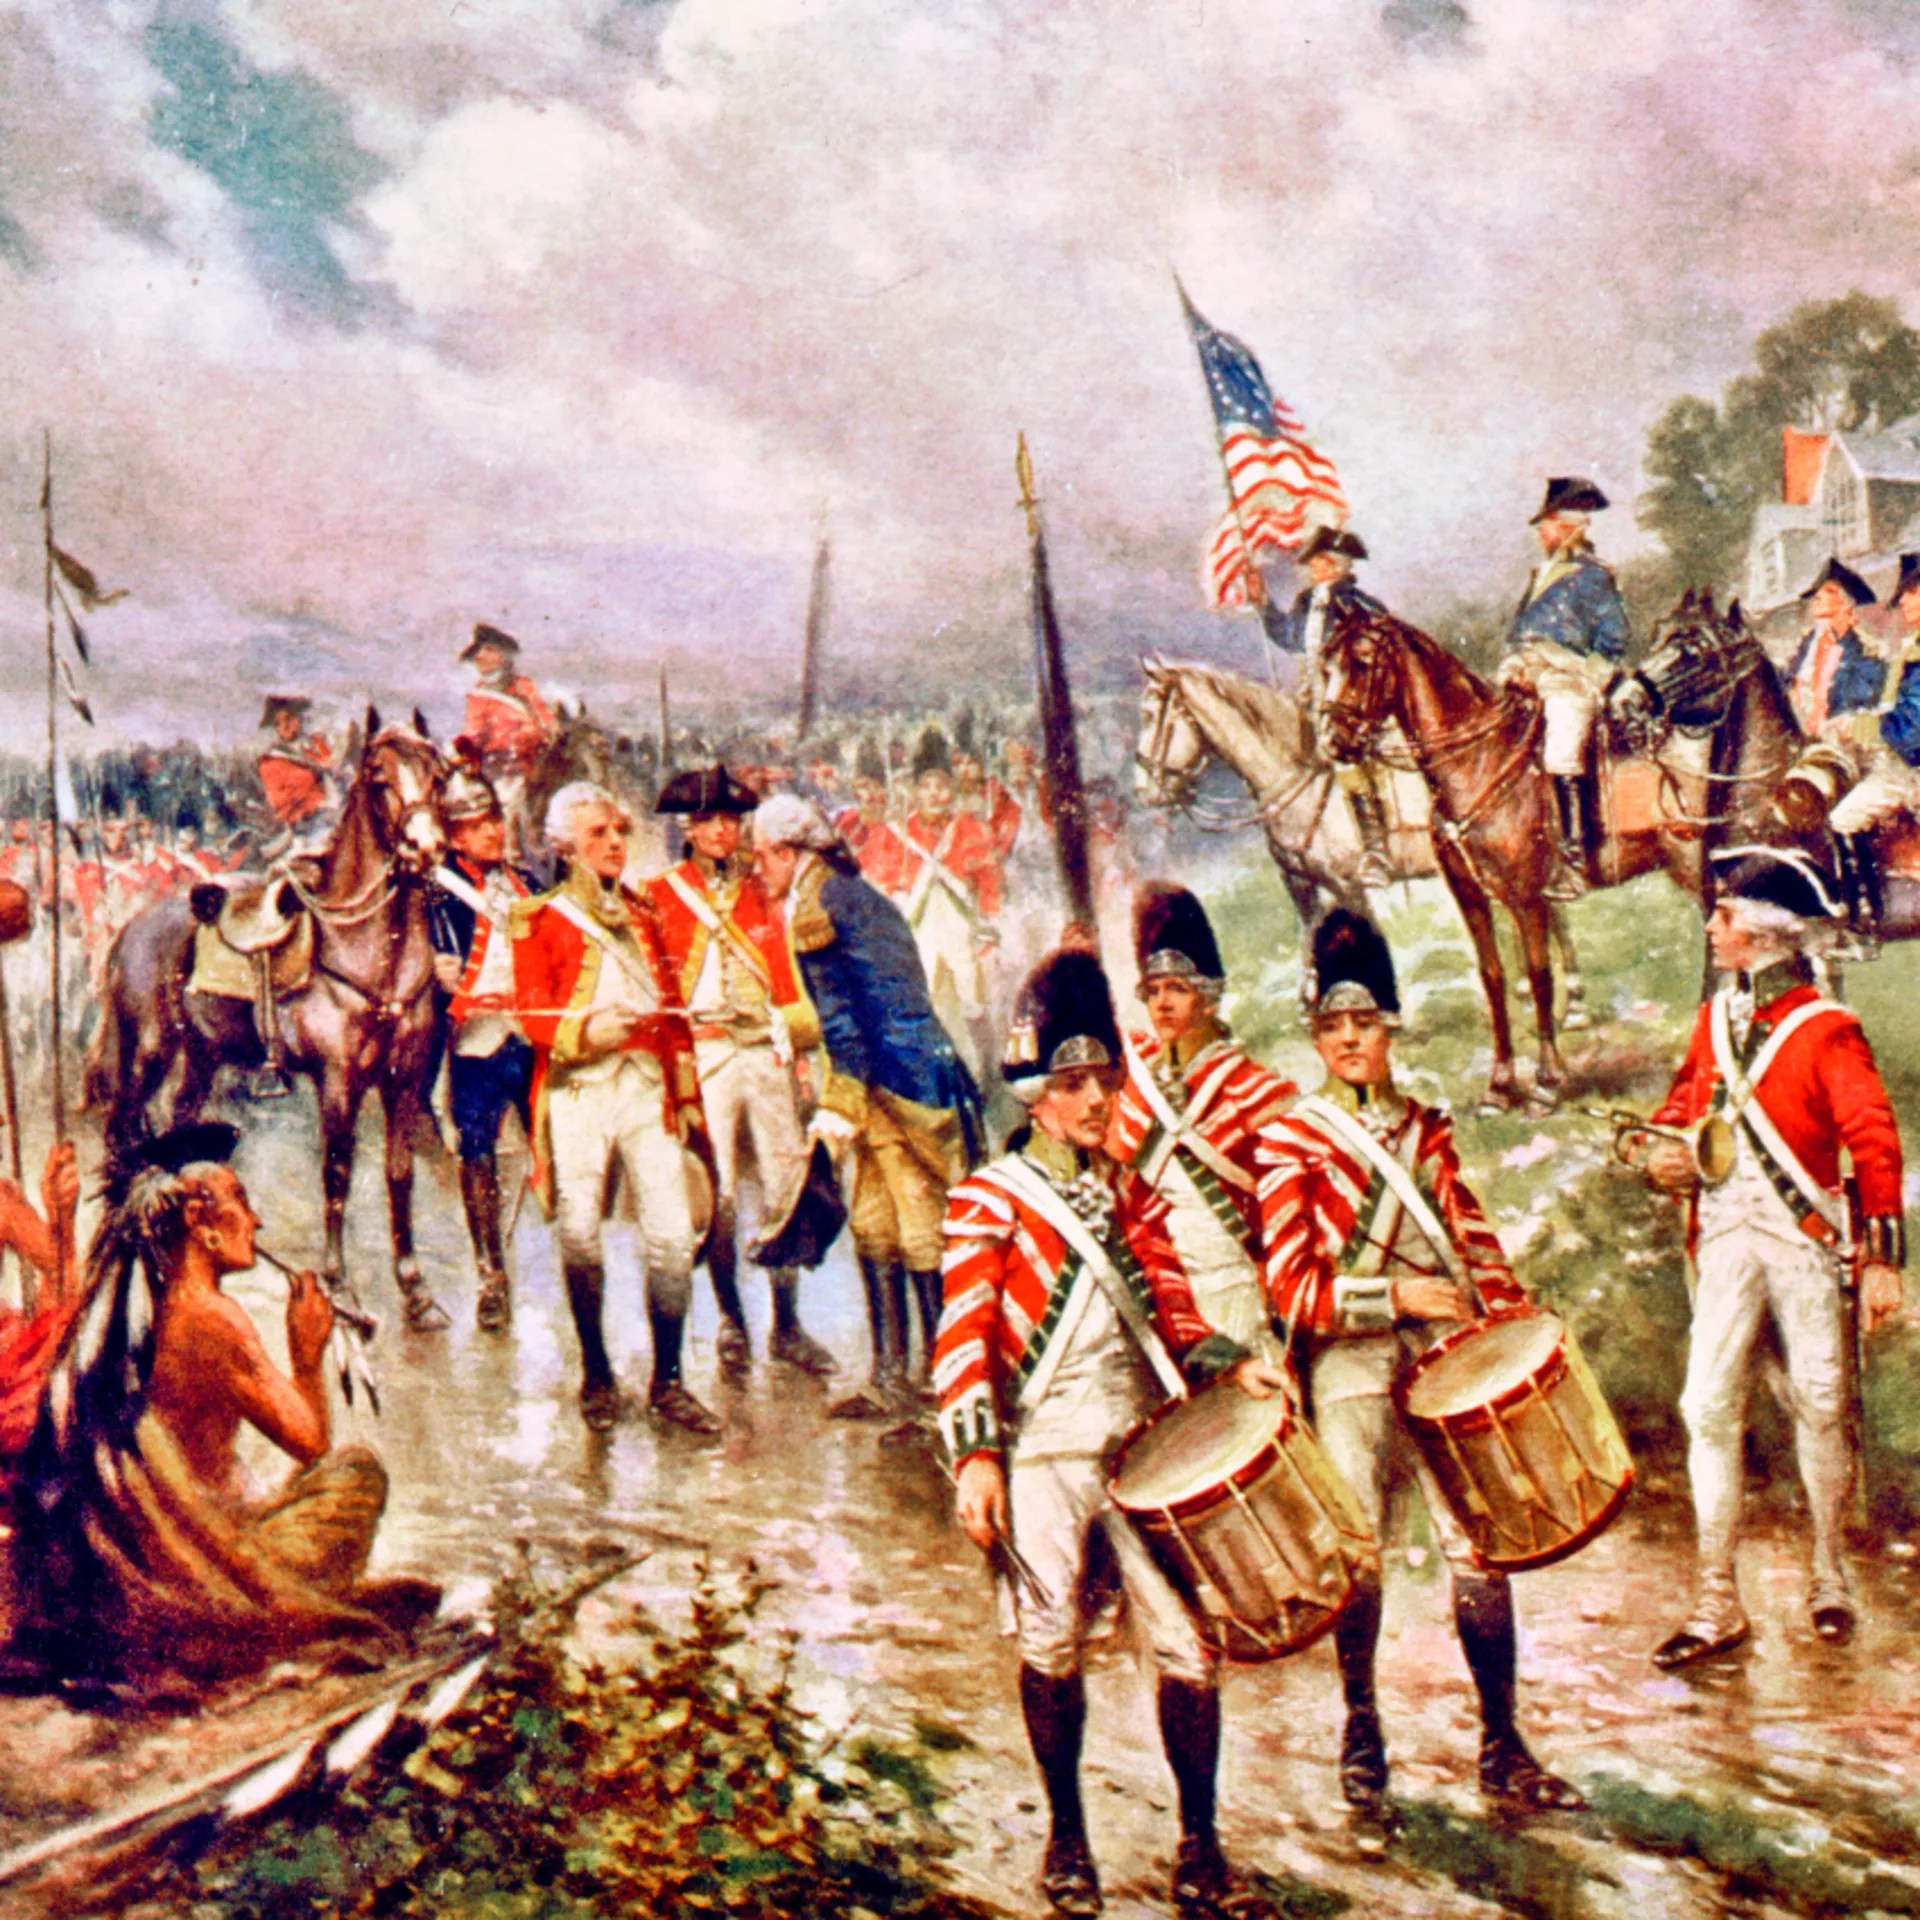 Turning Point Of American Revolution Determined At The